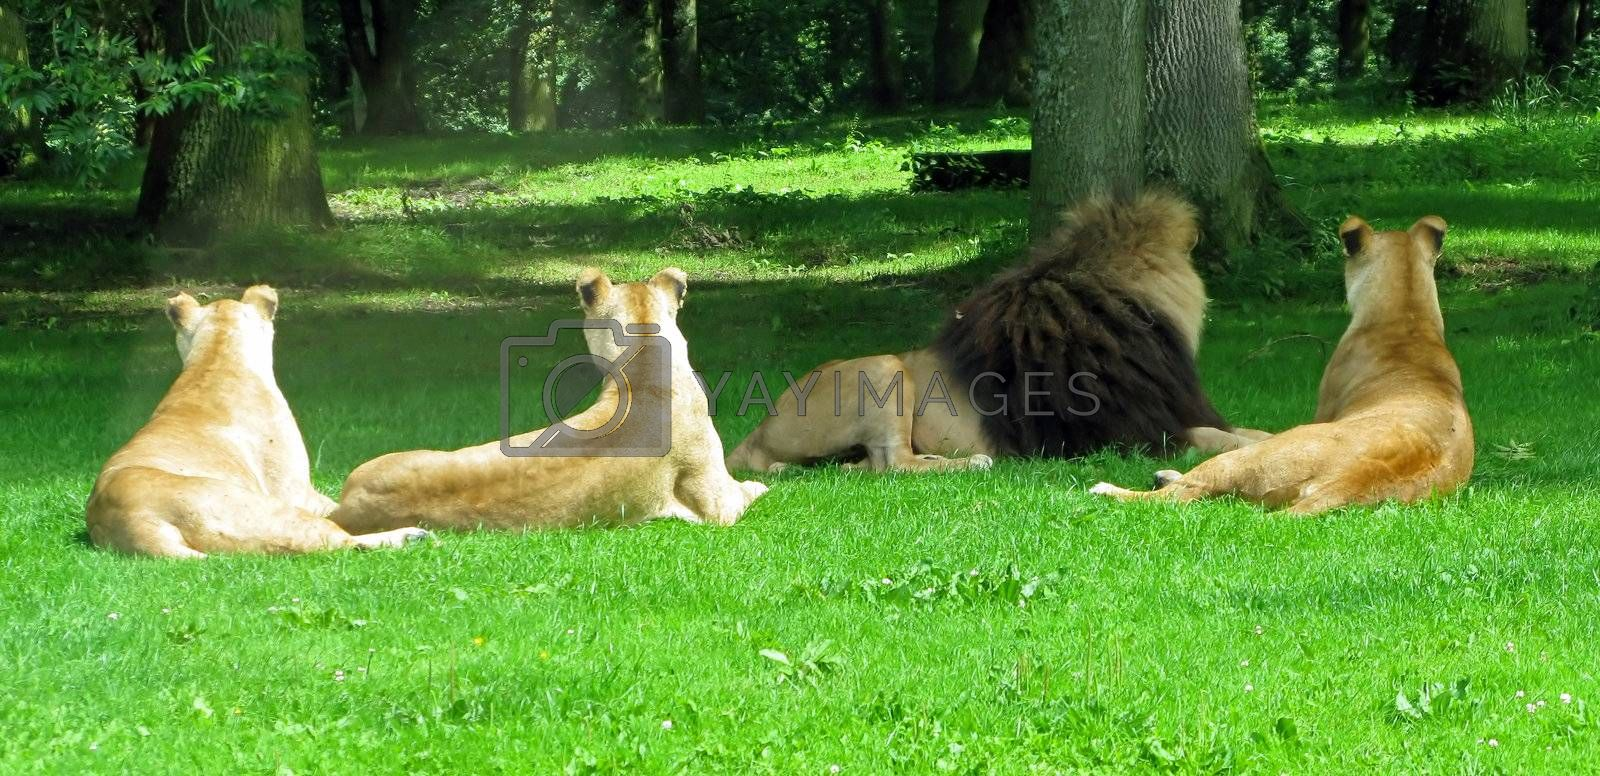 Lion and Lionesses by quackersnaps